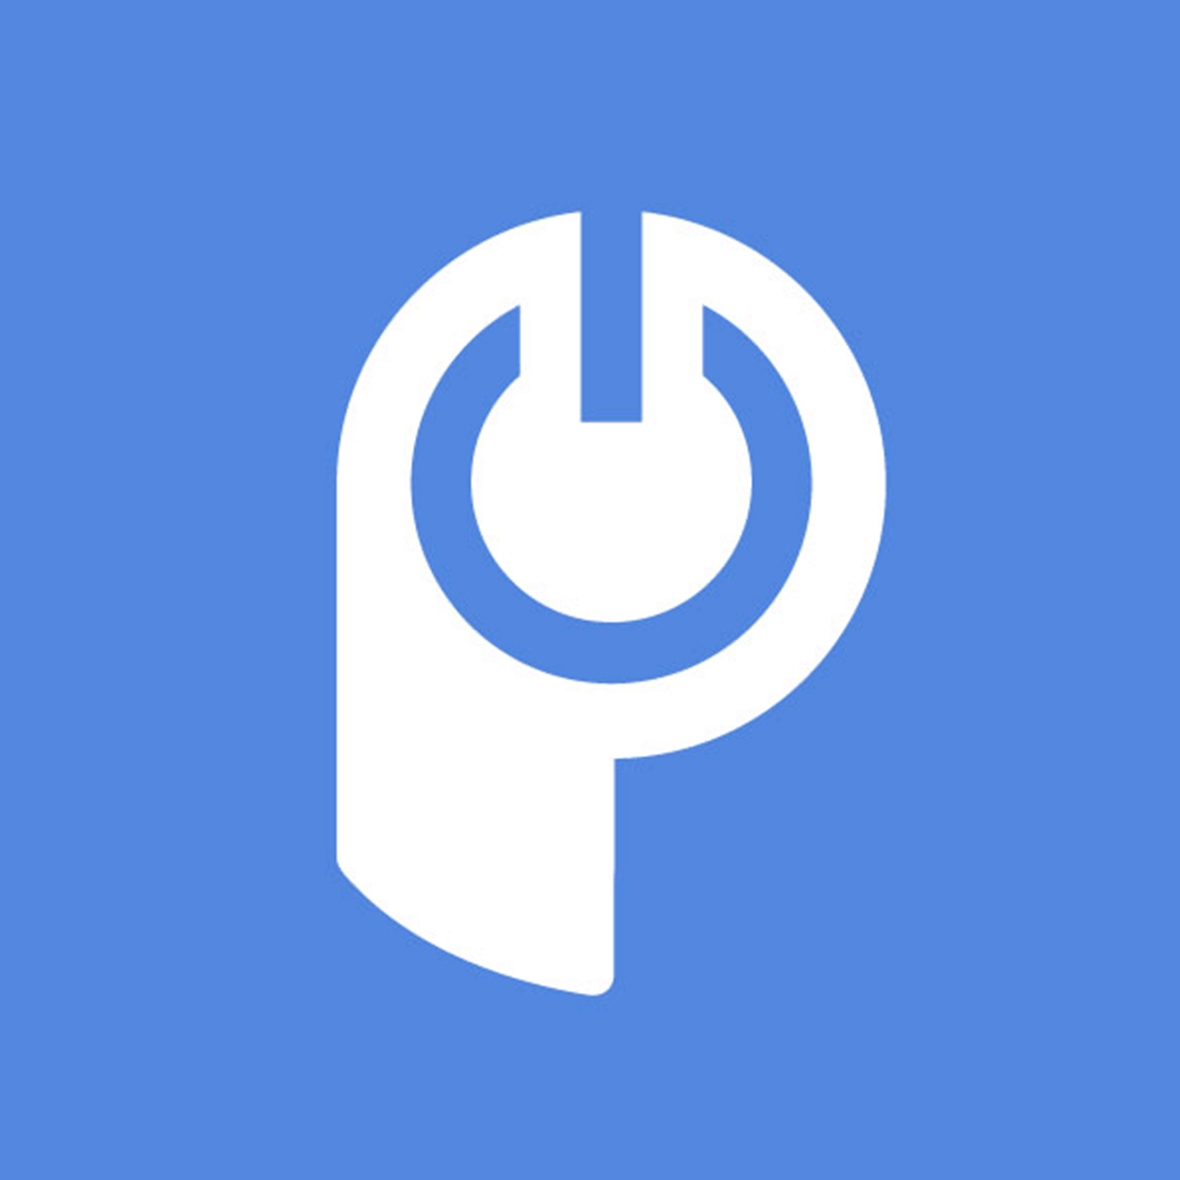 POWR brings you a full library of tools to help your store grow. They have a library of over 50 different tools to meet every business need, from forms, countdown timers, banner sliders, photo galleries, FAQs, payment buttons and more.